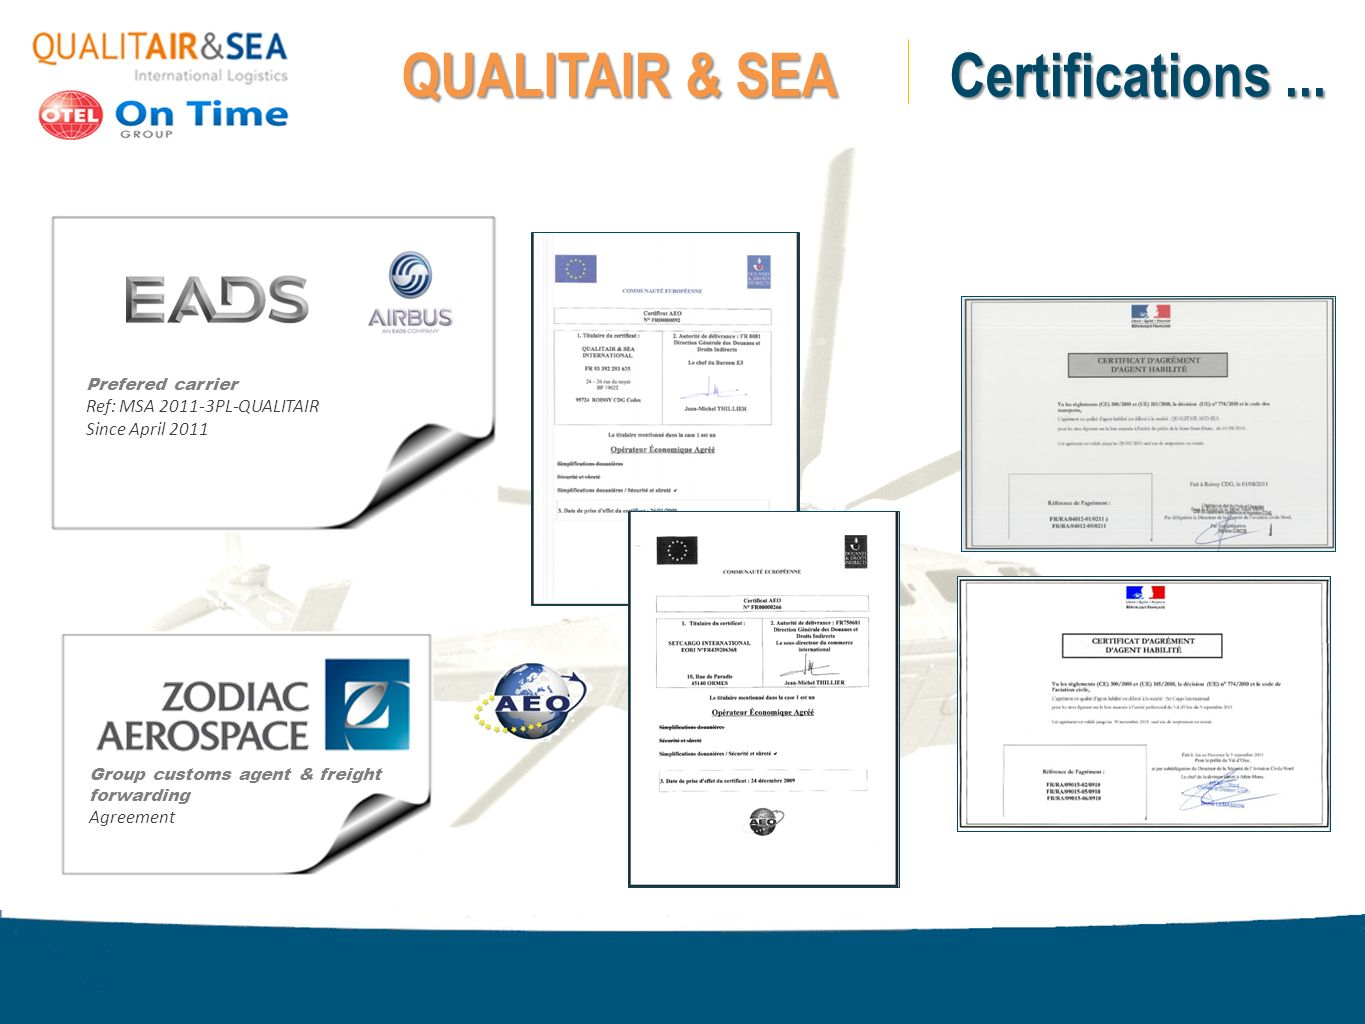 QUALITAIR & SEA Certifications ...